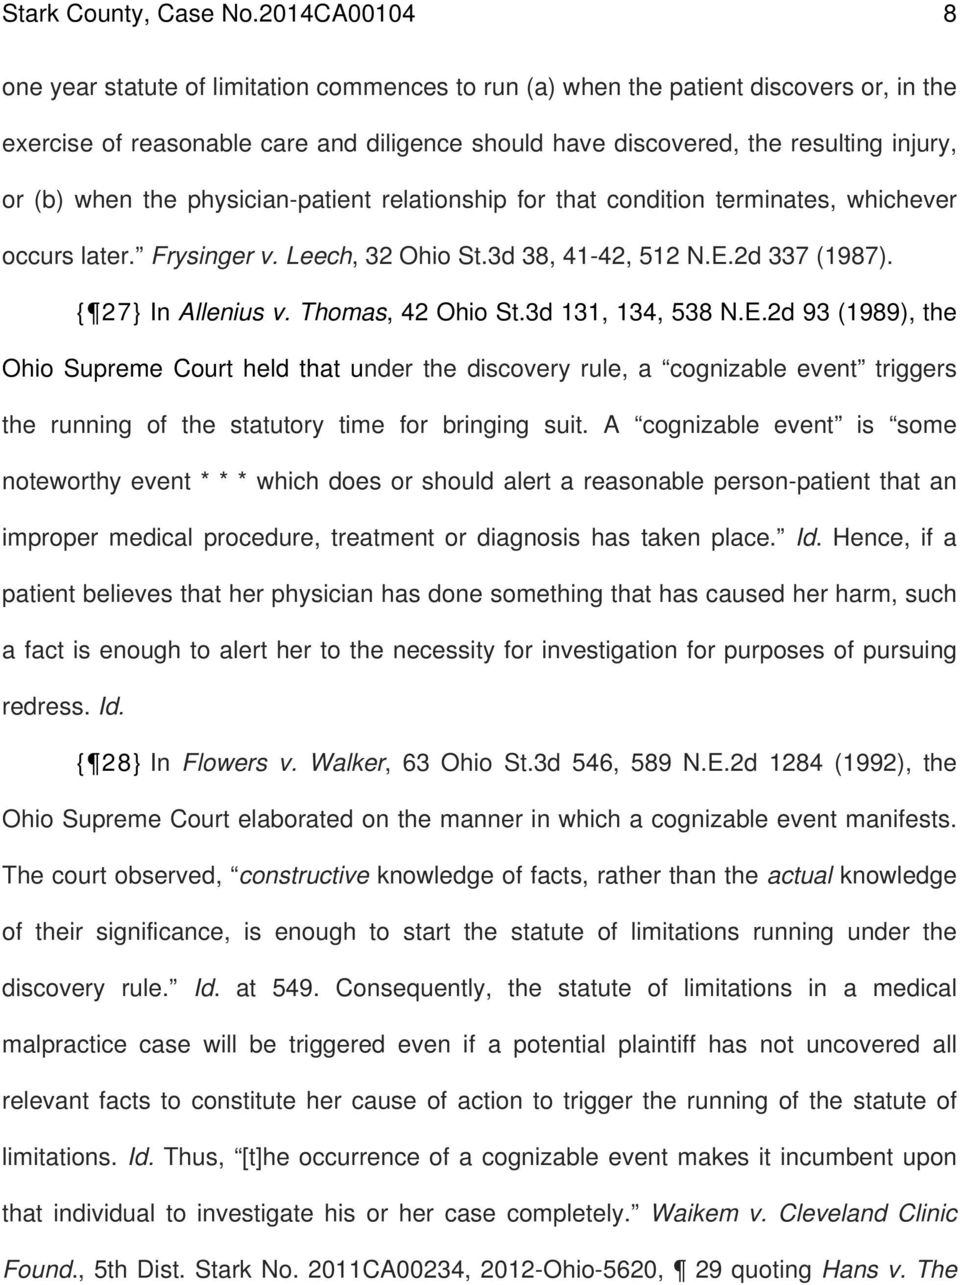 when the physician-patient relationship for that condition terminates, whichever occurs later. Frysinger v. Leech, 32 Ohio St.3d 38, 41-42, 512 N.E.2d 337 (1987). { 27} In Allenius v.